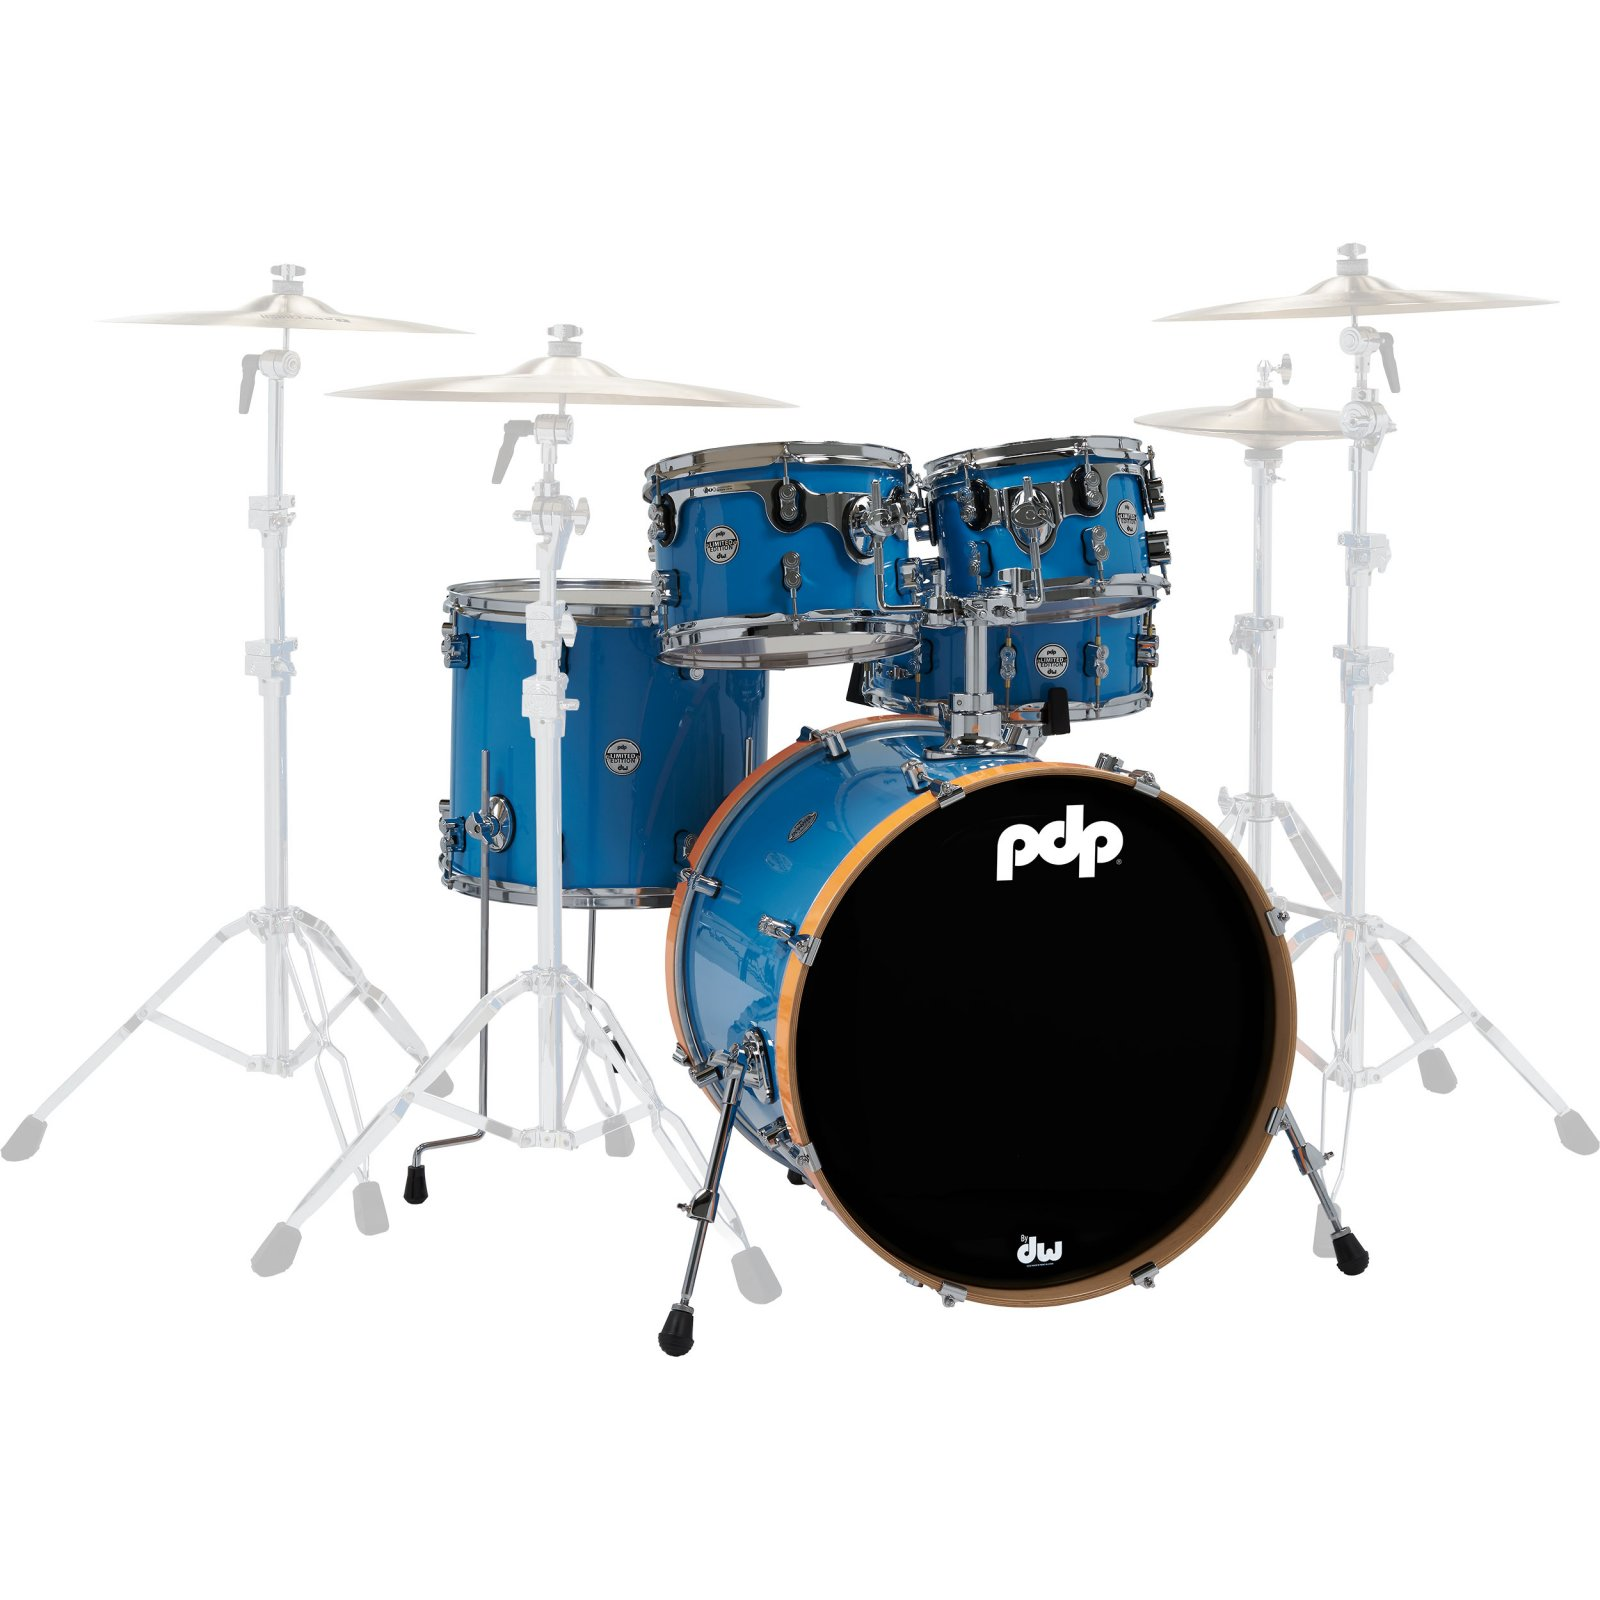 PDP Limited Edition 5-piece Shell Pack - Blue/Orange